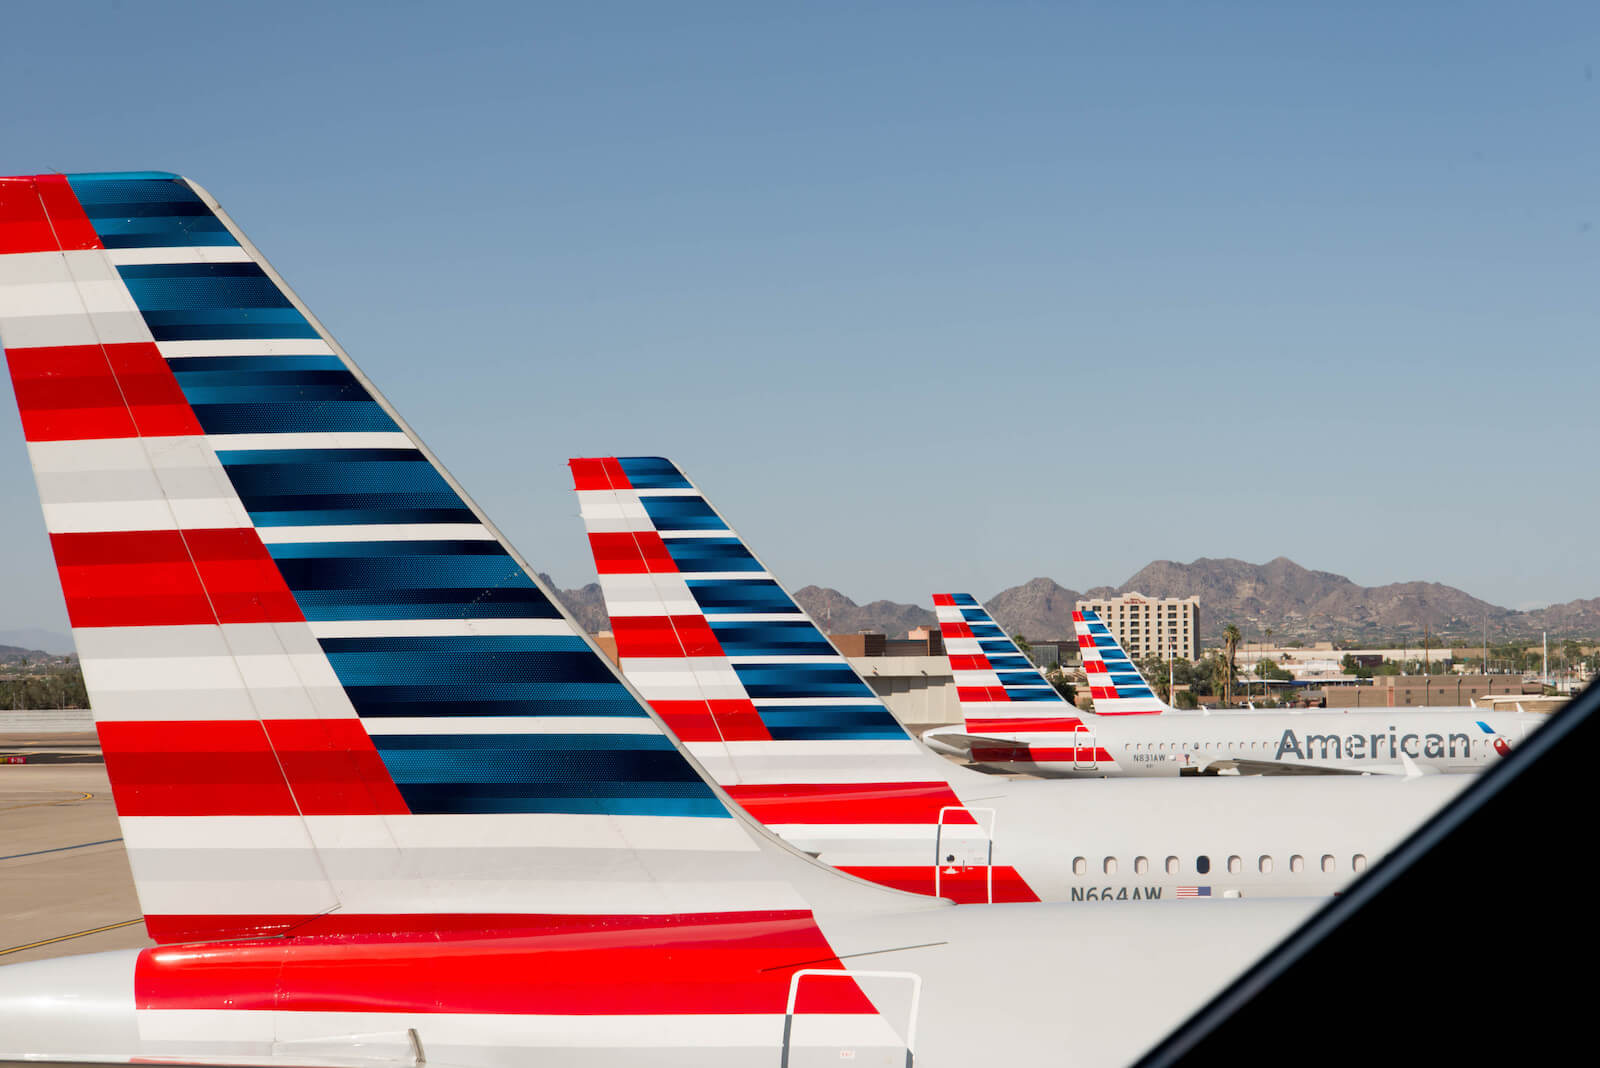 How to track your American Airlines flight